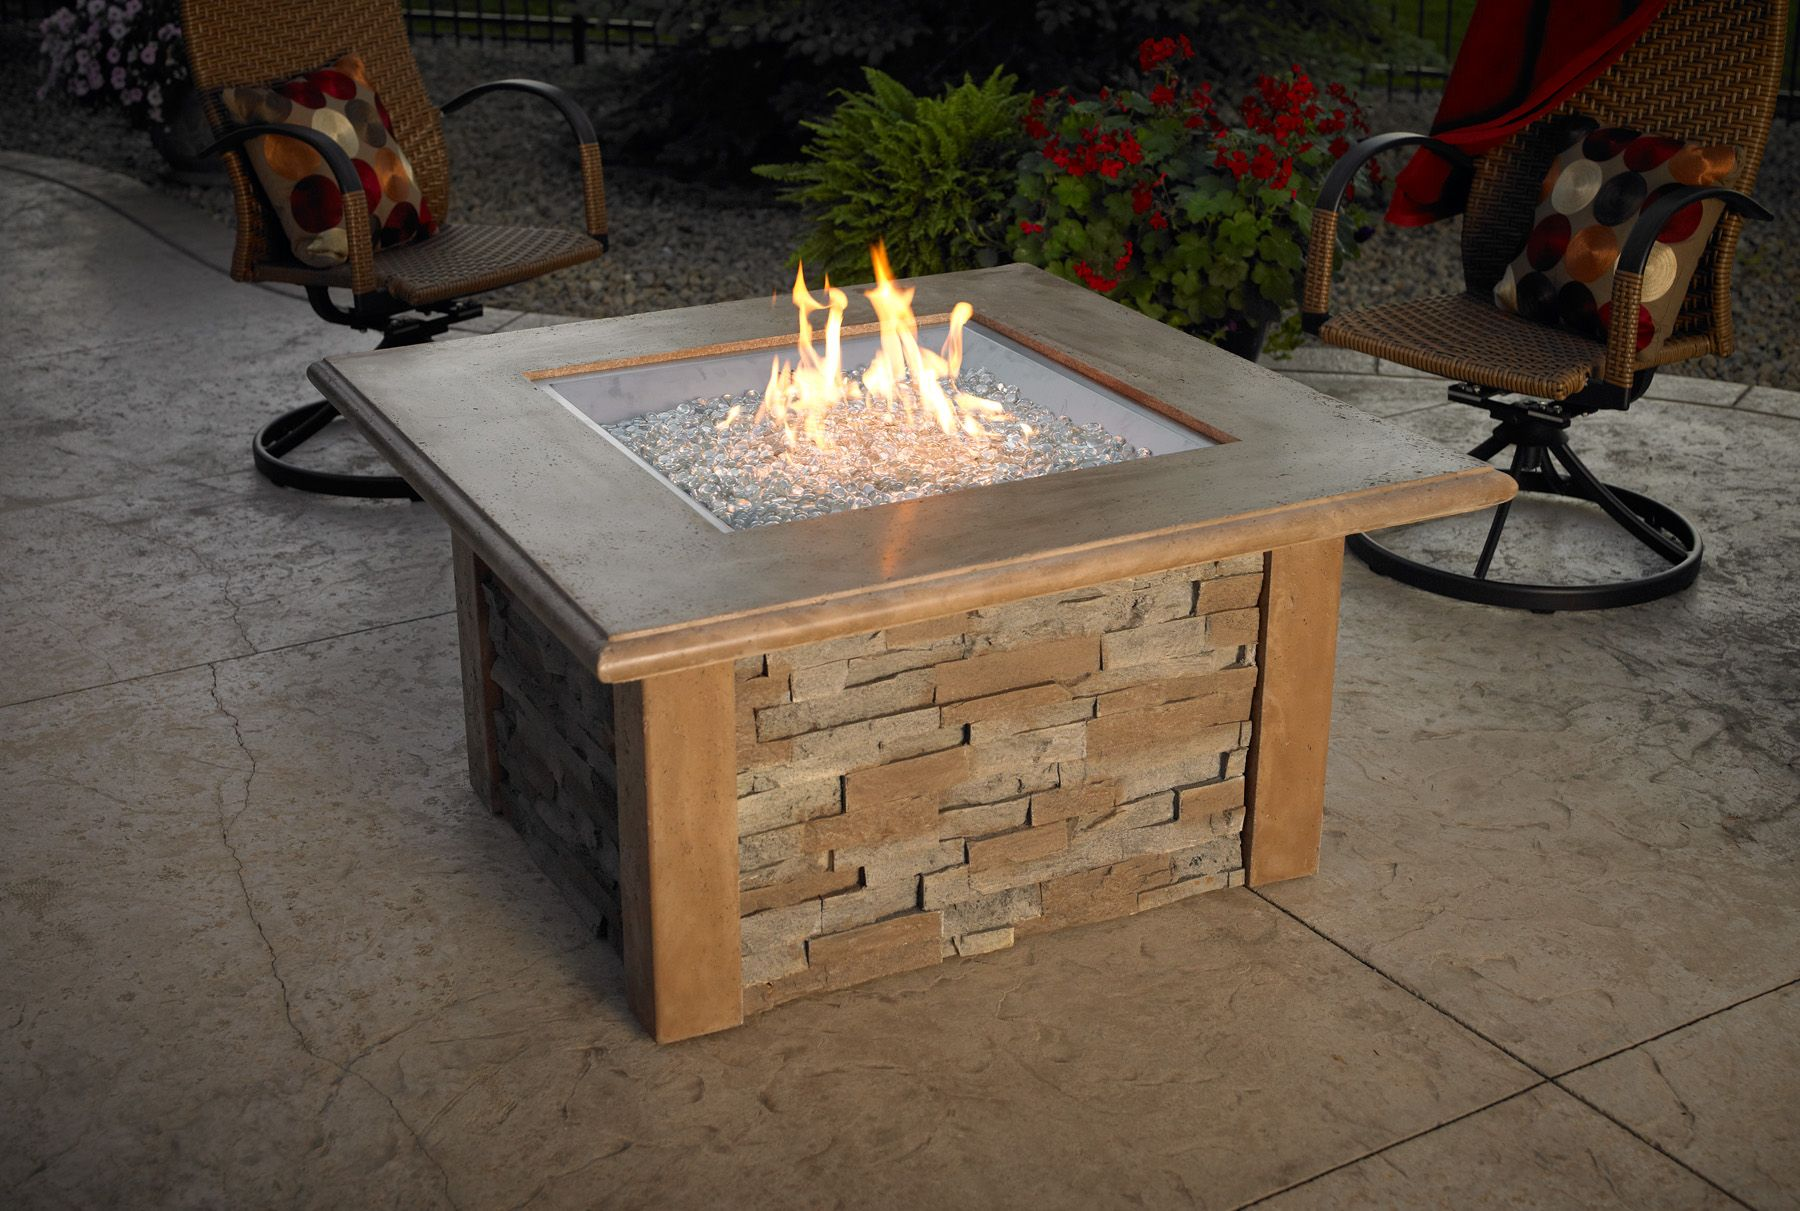 Table Top Fire Pit For The Home Pinterest Outdoor Spaces - Outdoor gas fire pit table top